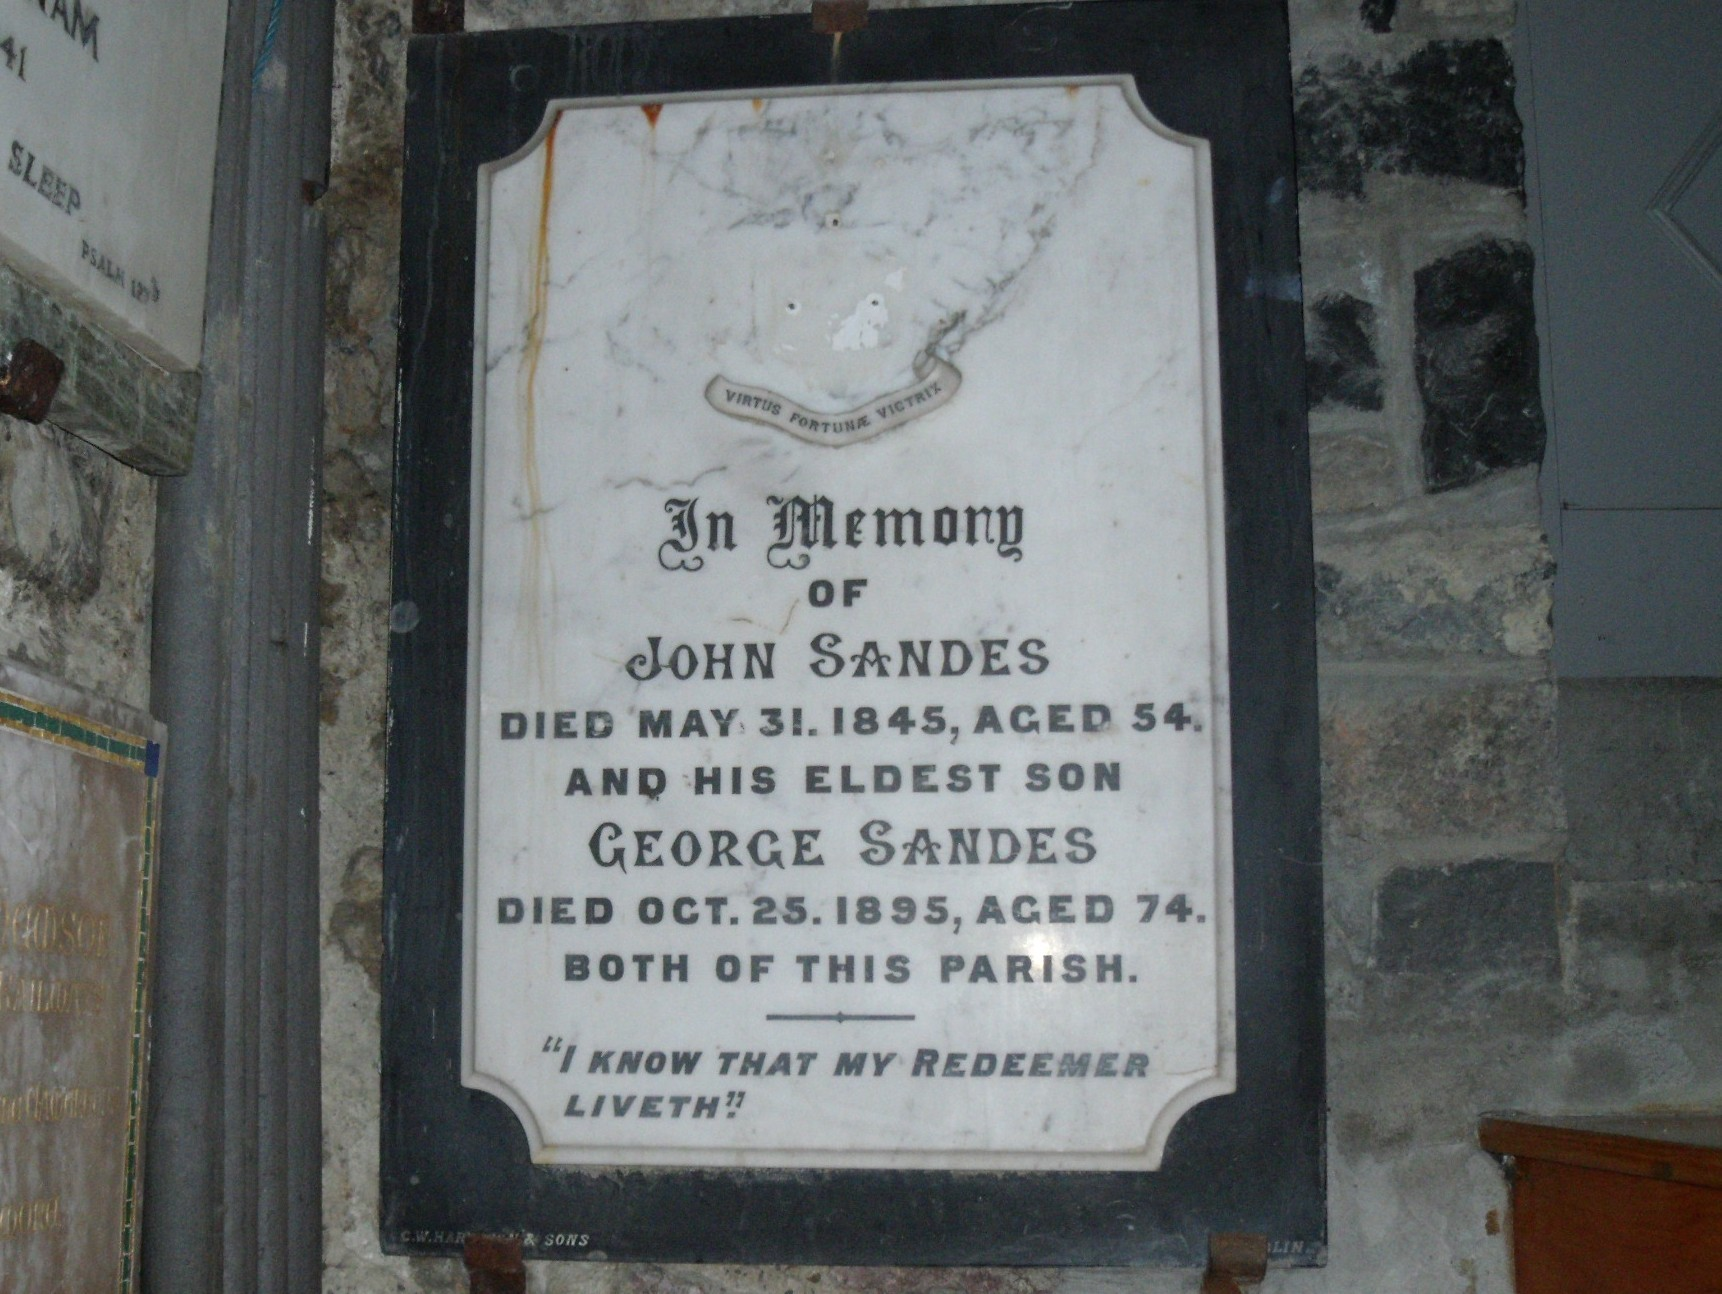 Memorial plaque dedicated to John Sandes in the St John's Church, Listowel, County Kerry